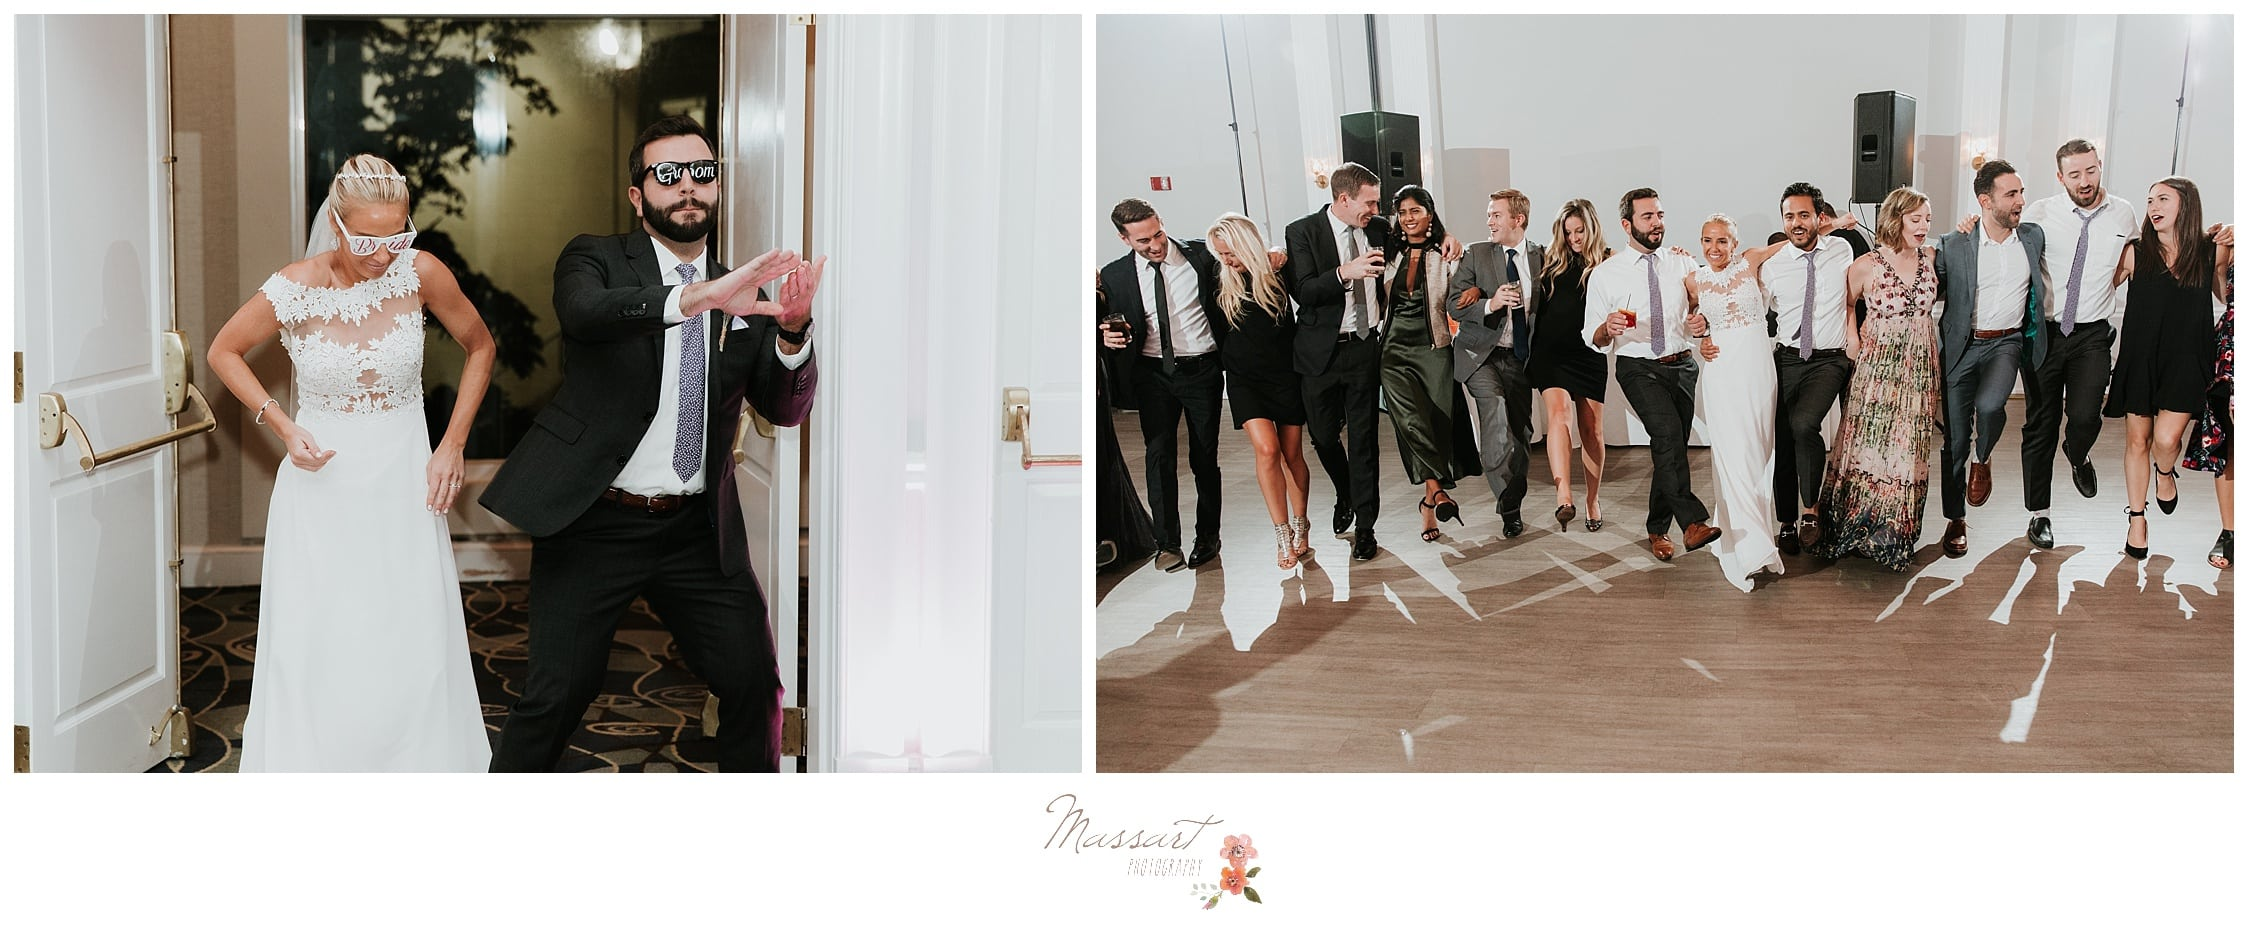 Husband and wife having fun while dancing into their wedding reception photographed by Massart Photography RI